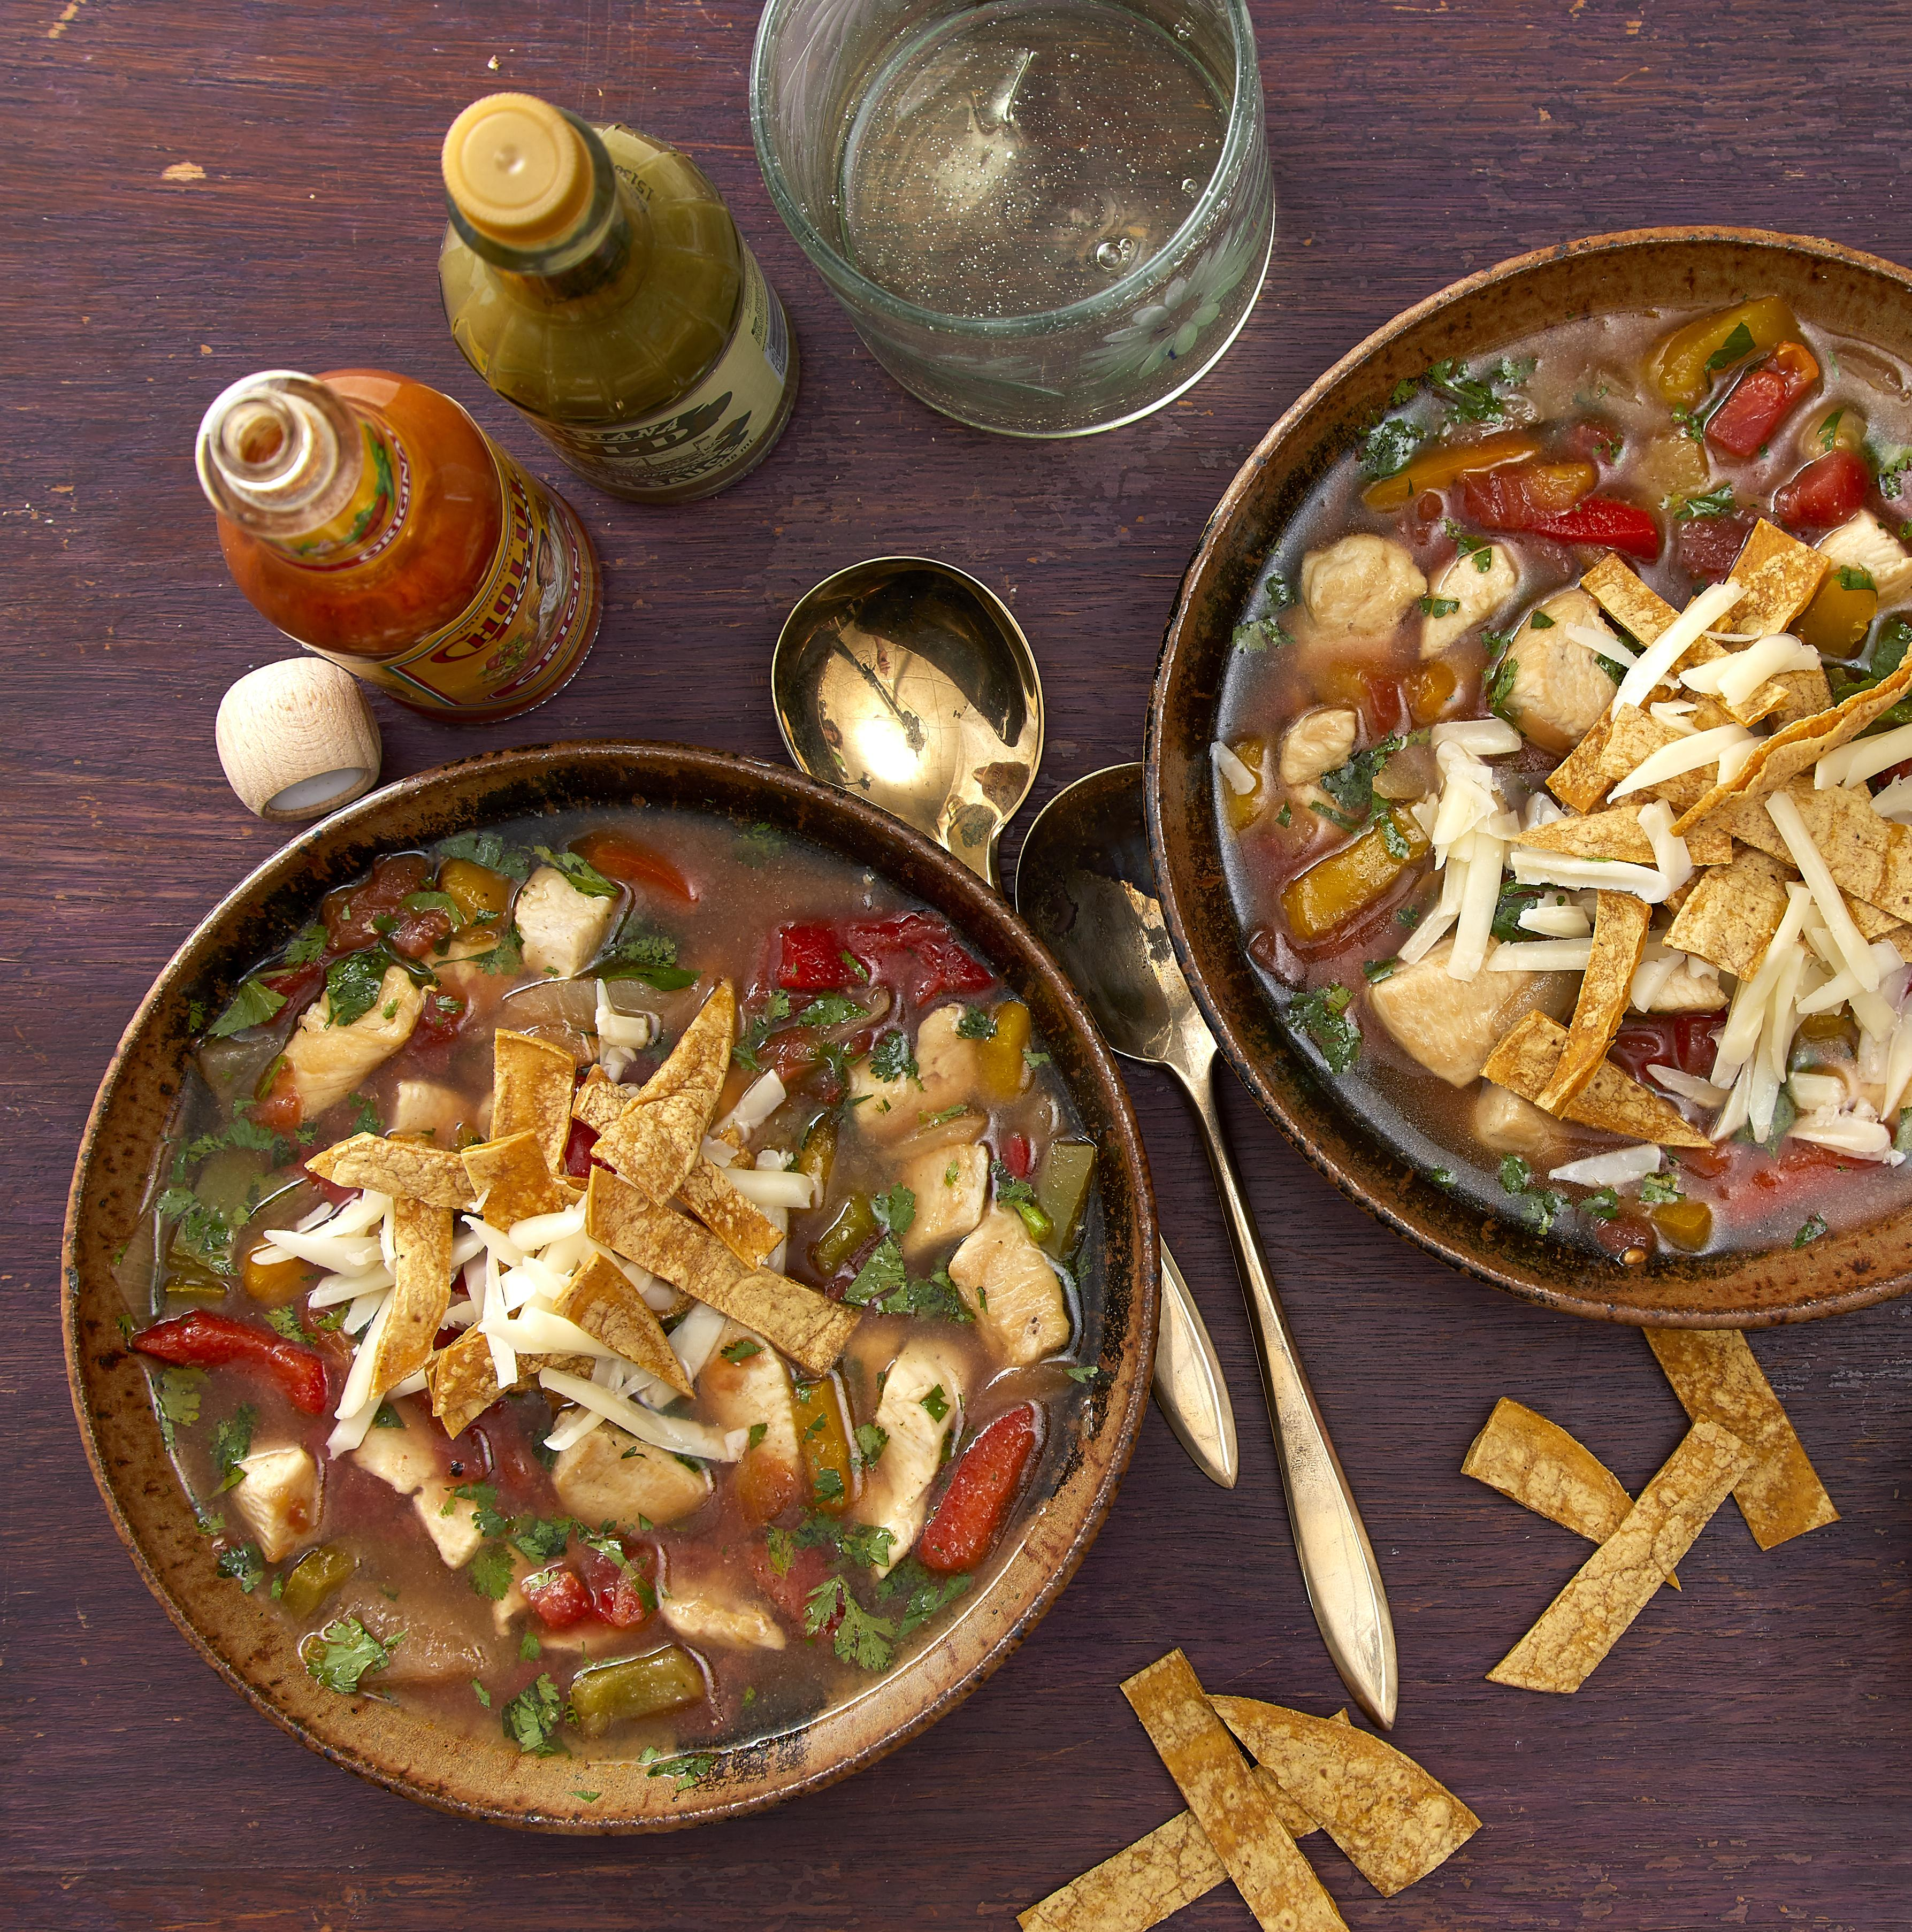 Making soups may have once been an all-day affair, but here's a great example of how a few choice convenience products can renovate an old favorite for our modern, hectic lives. Some frozen vegetables, a few canned tomatoes and canned broth—and voila! a Tex-Mex favorite in minutes.